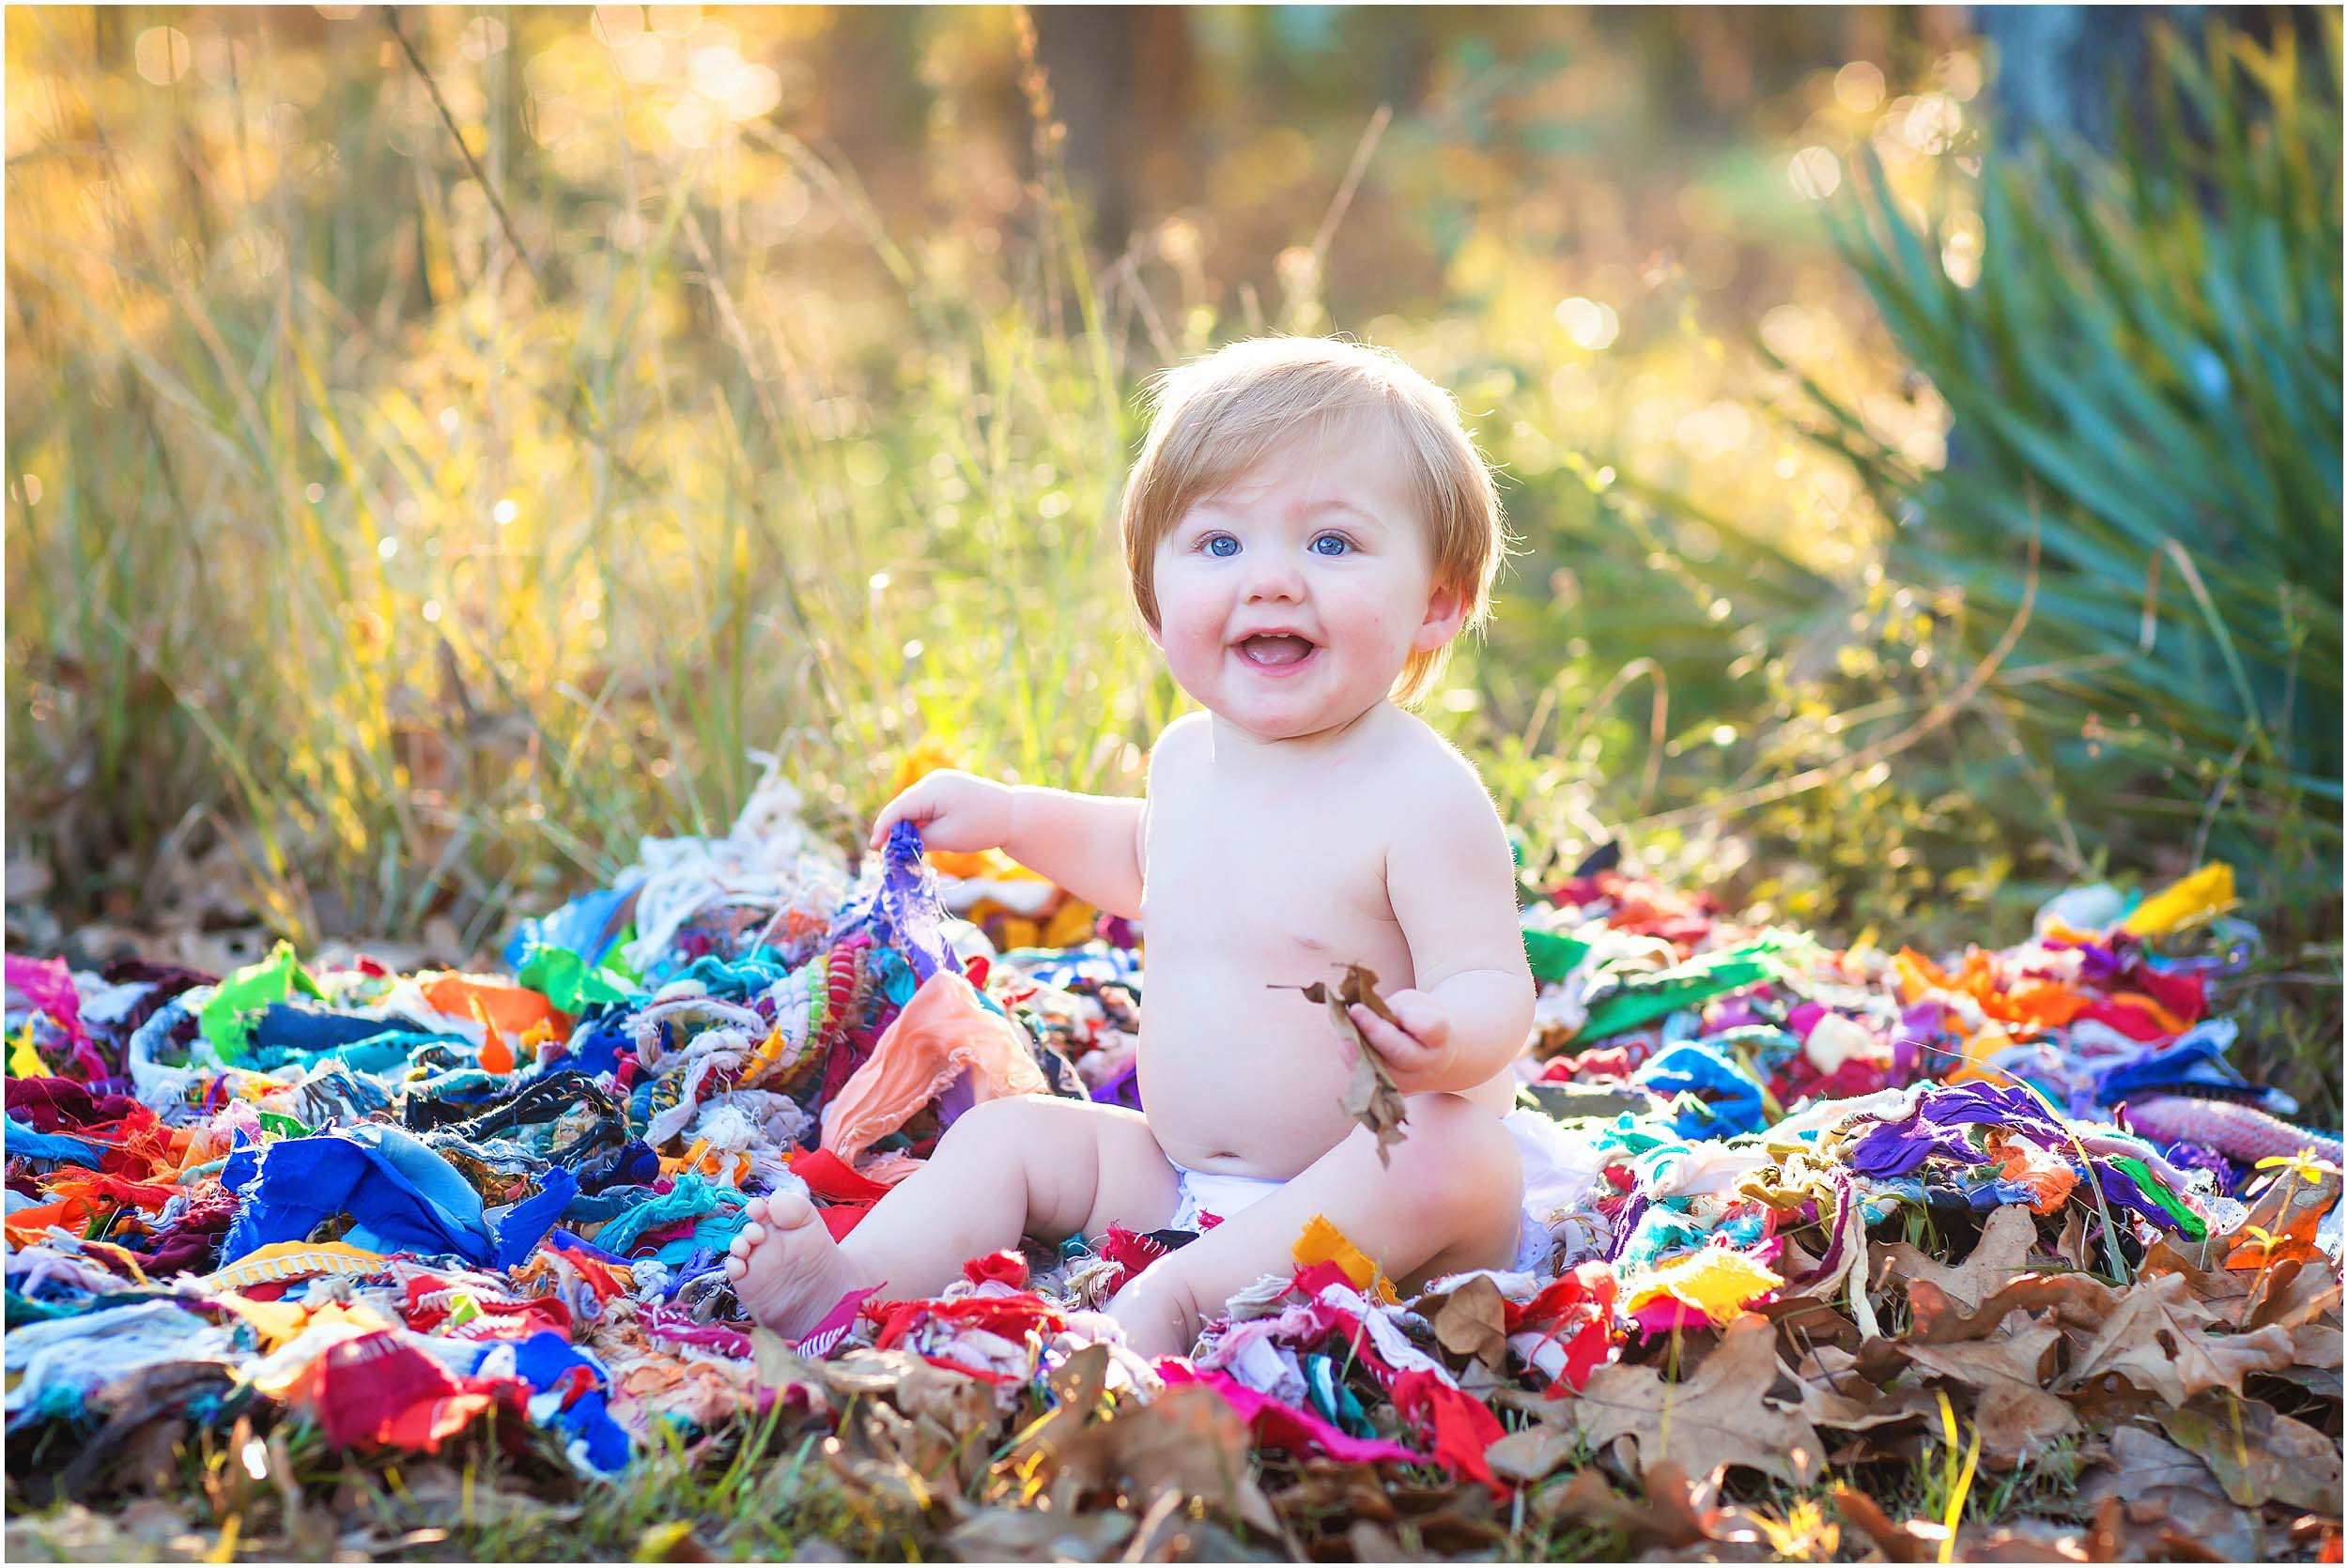 Photograph of a baby sitting in a field on a colorful blanket in The Woodlands, Texas taken by Houston Family Photographer spryART photography.